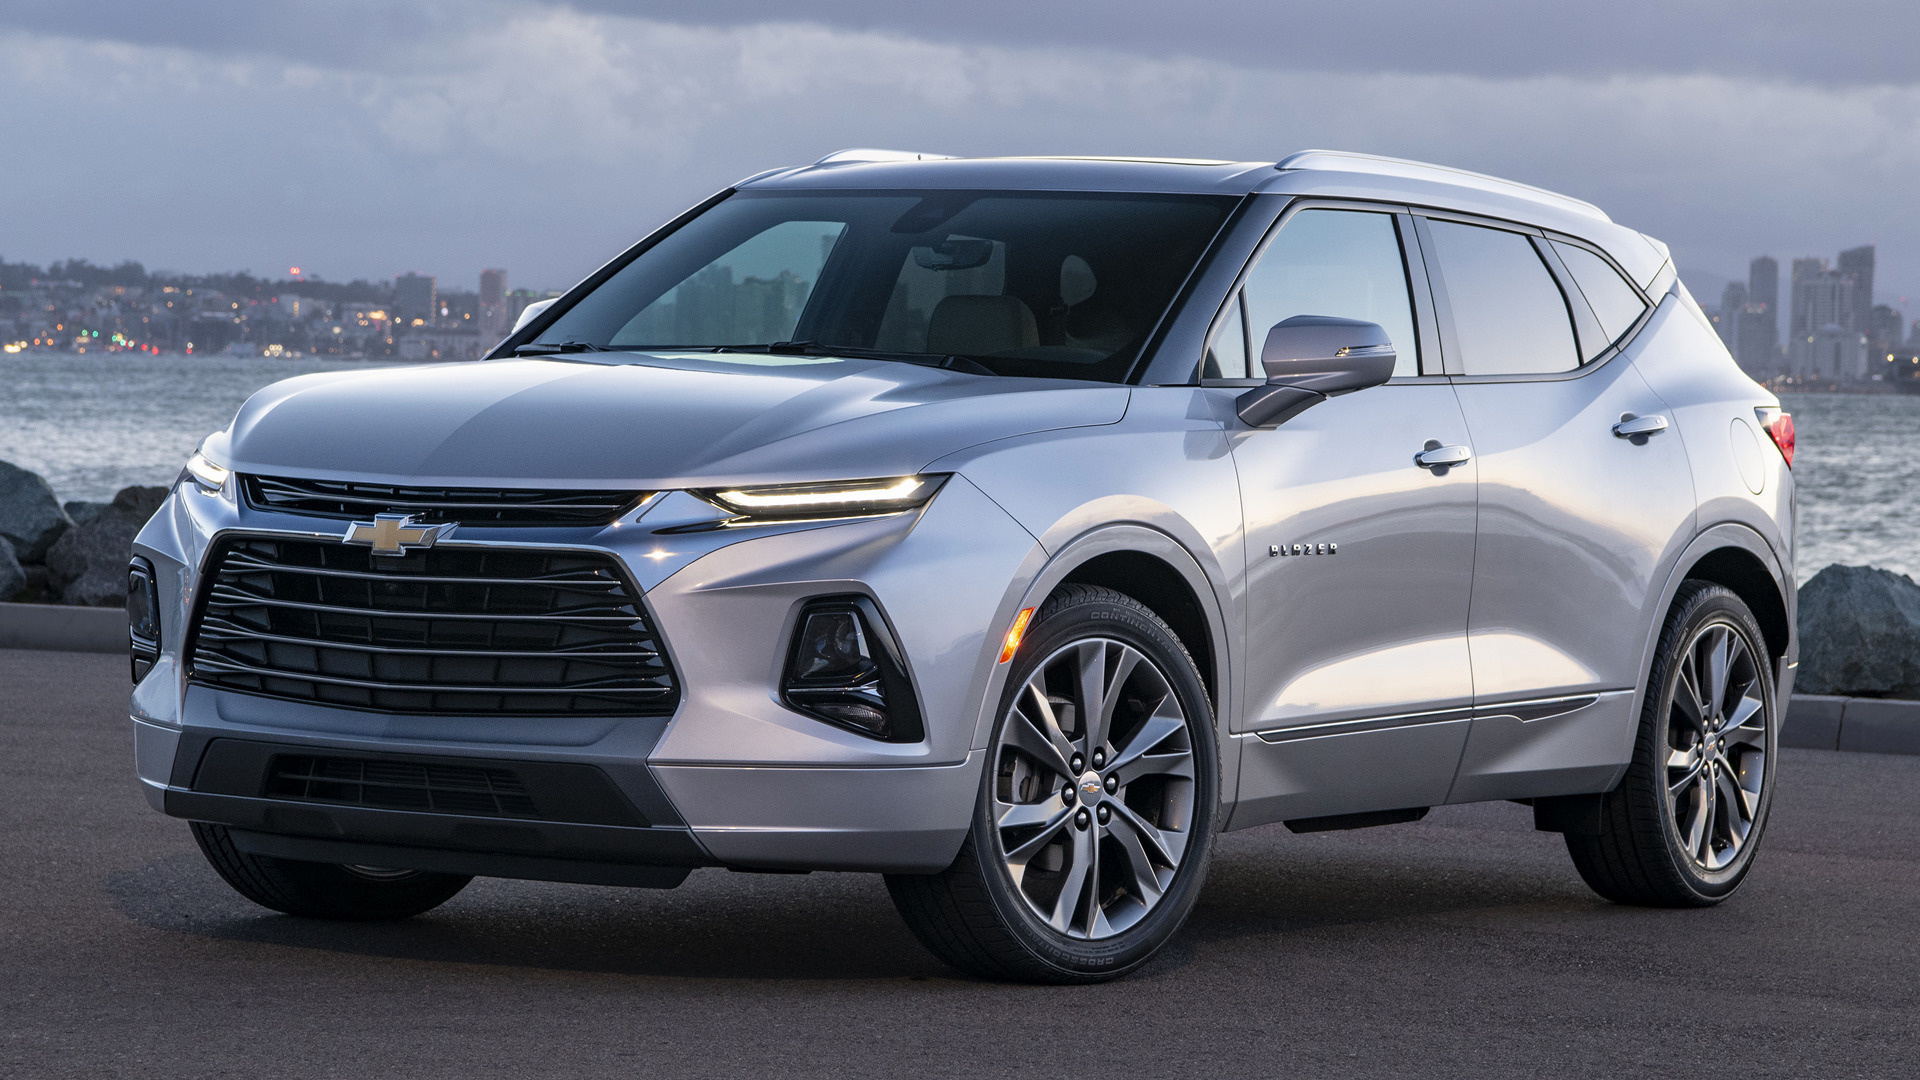 2019 Chevrolet Blazer - Wallpapers and HD Images | Car Pixel